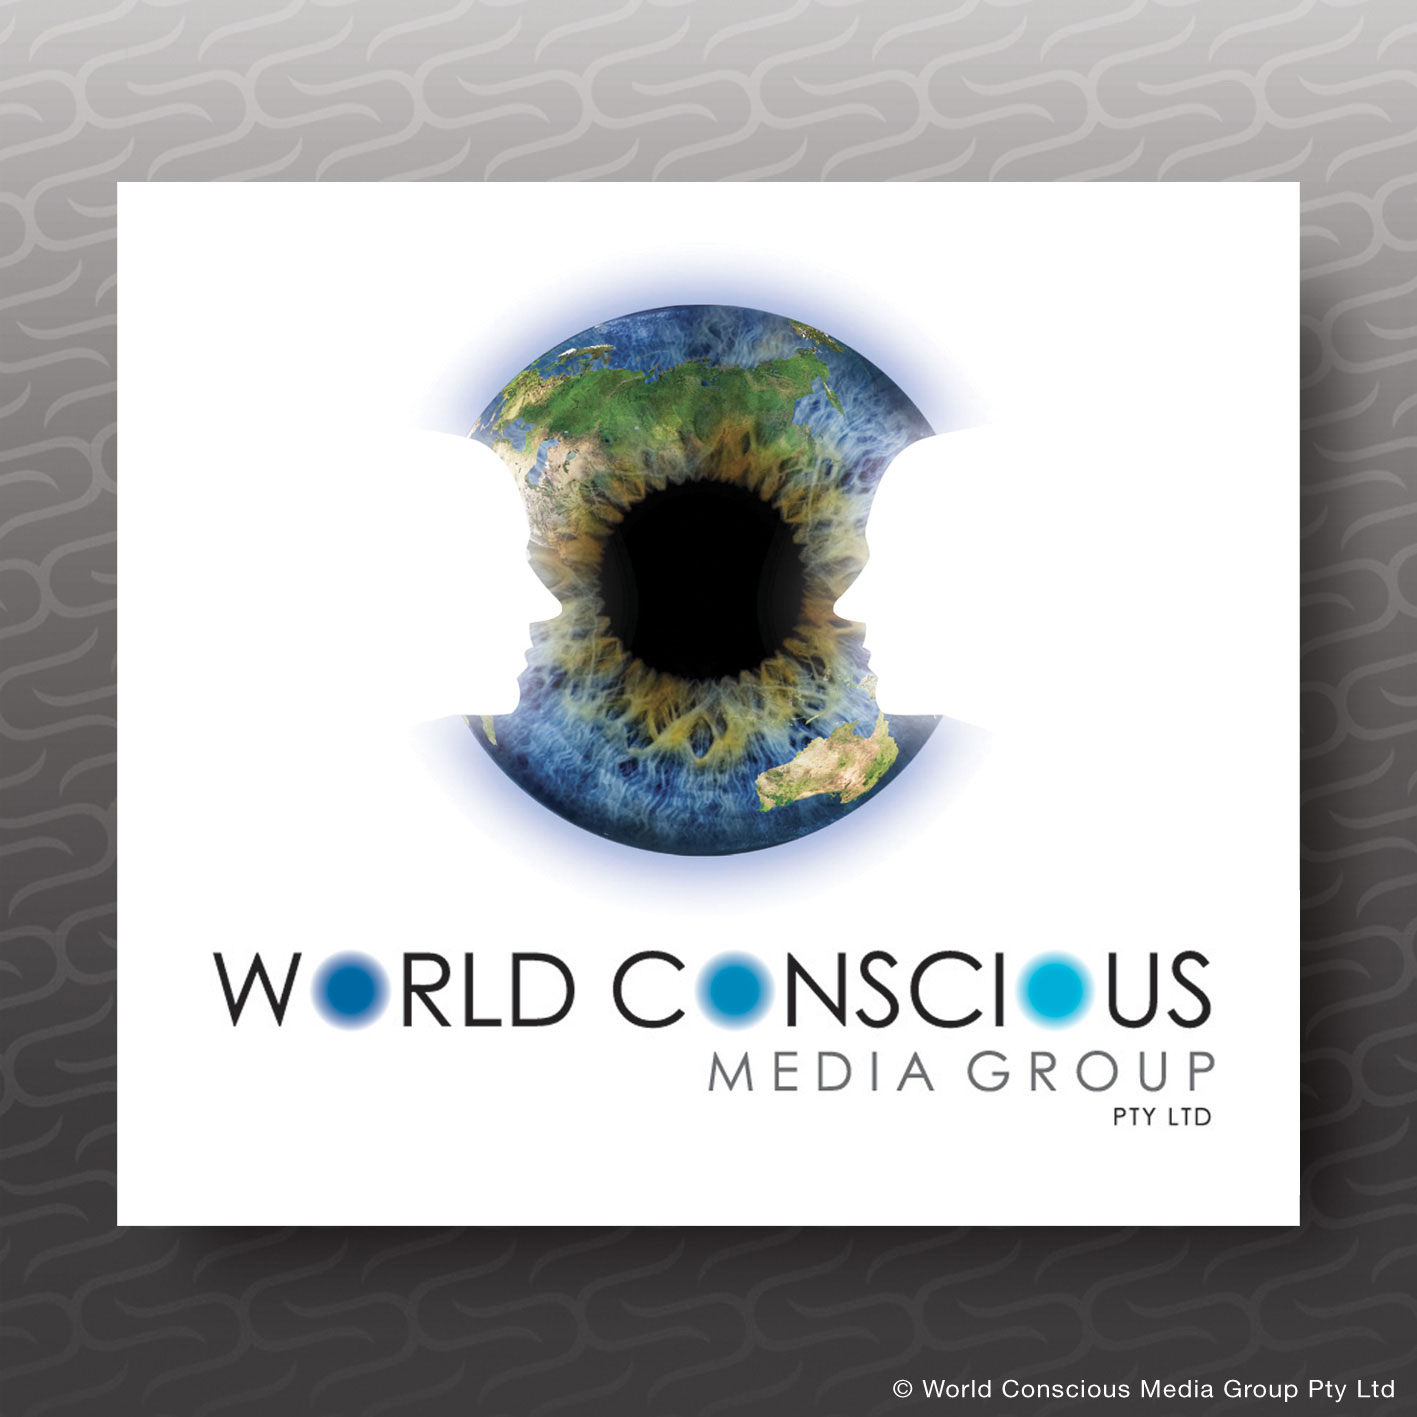 Dc design world conscious media group pty ltd for Outer space design group pty ltd